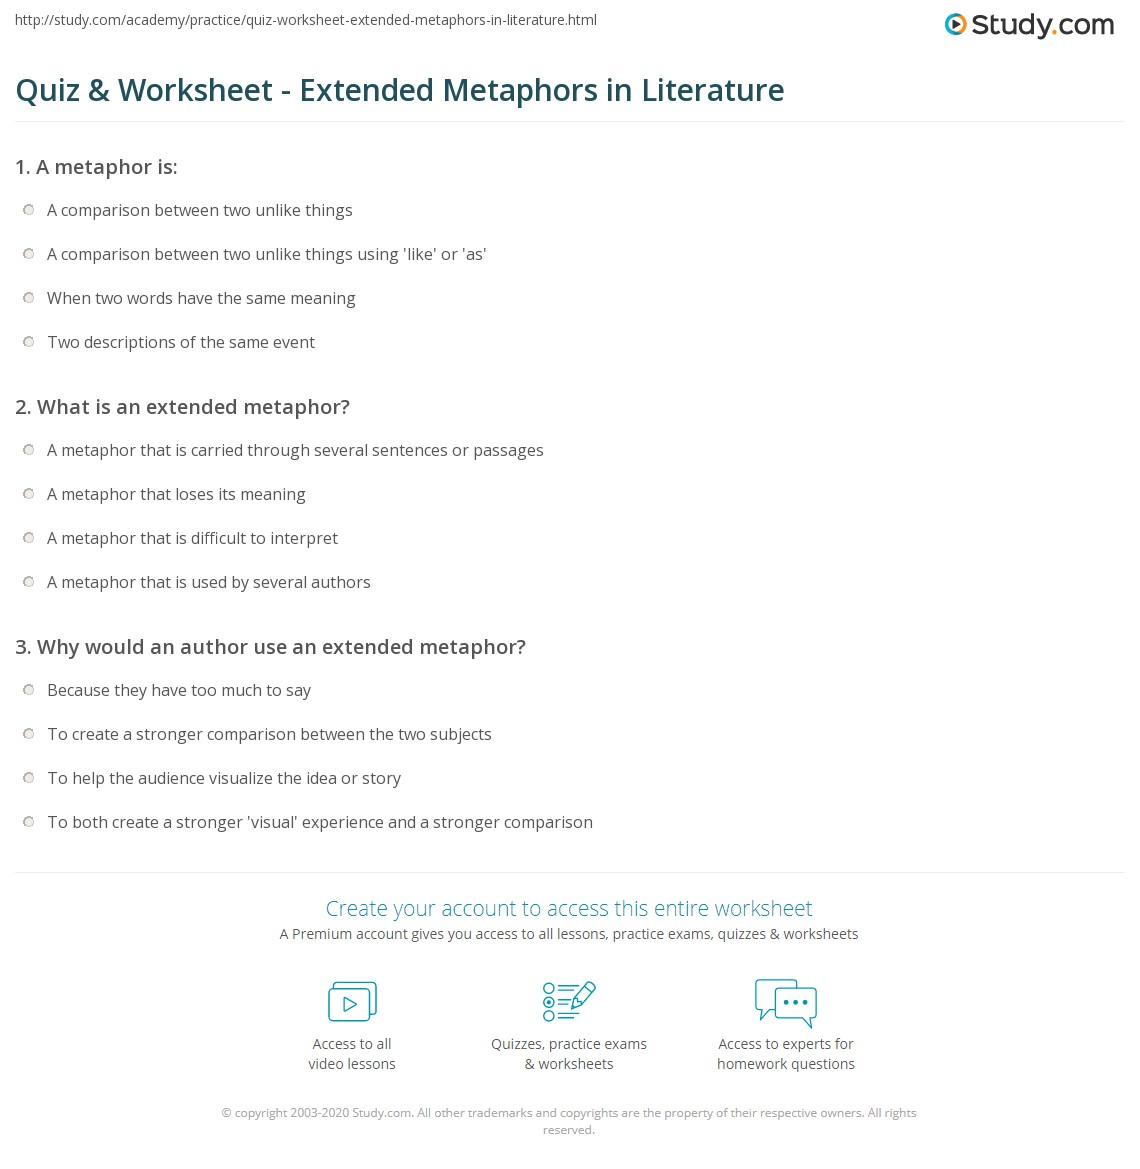 worksheet Metaphors Worksheets quiz worksheet extended metaphors in literature study com print what is an metaphor definition examples worksheet